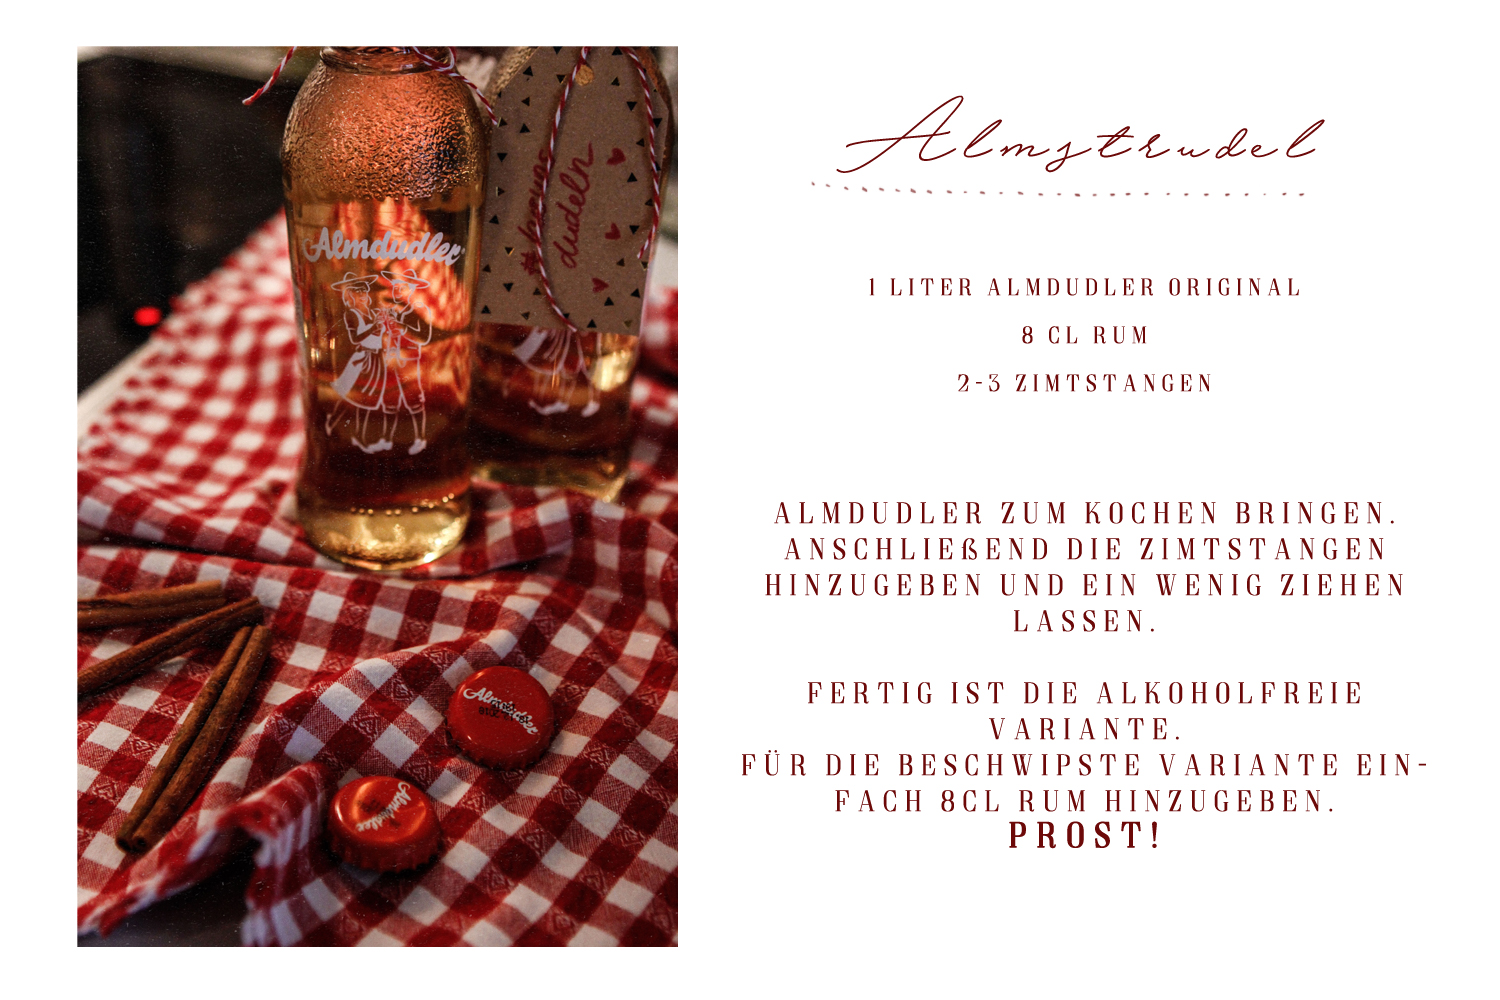 Lauralamode Almdudler Christmas Christmas Drinks Recipe Rezept Glühwein Drinks Food Foodblogger Blogger Fashionblogger Berlin Munich Deutschland Hot Almdudler Drink Recipe